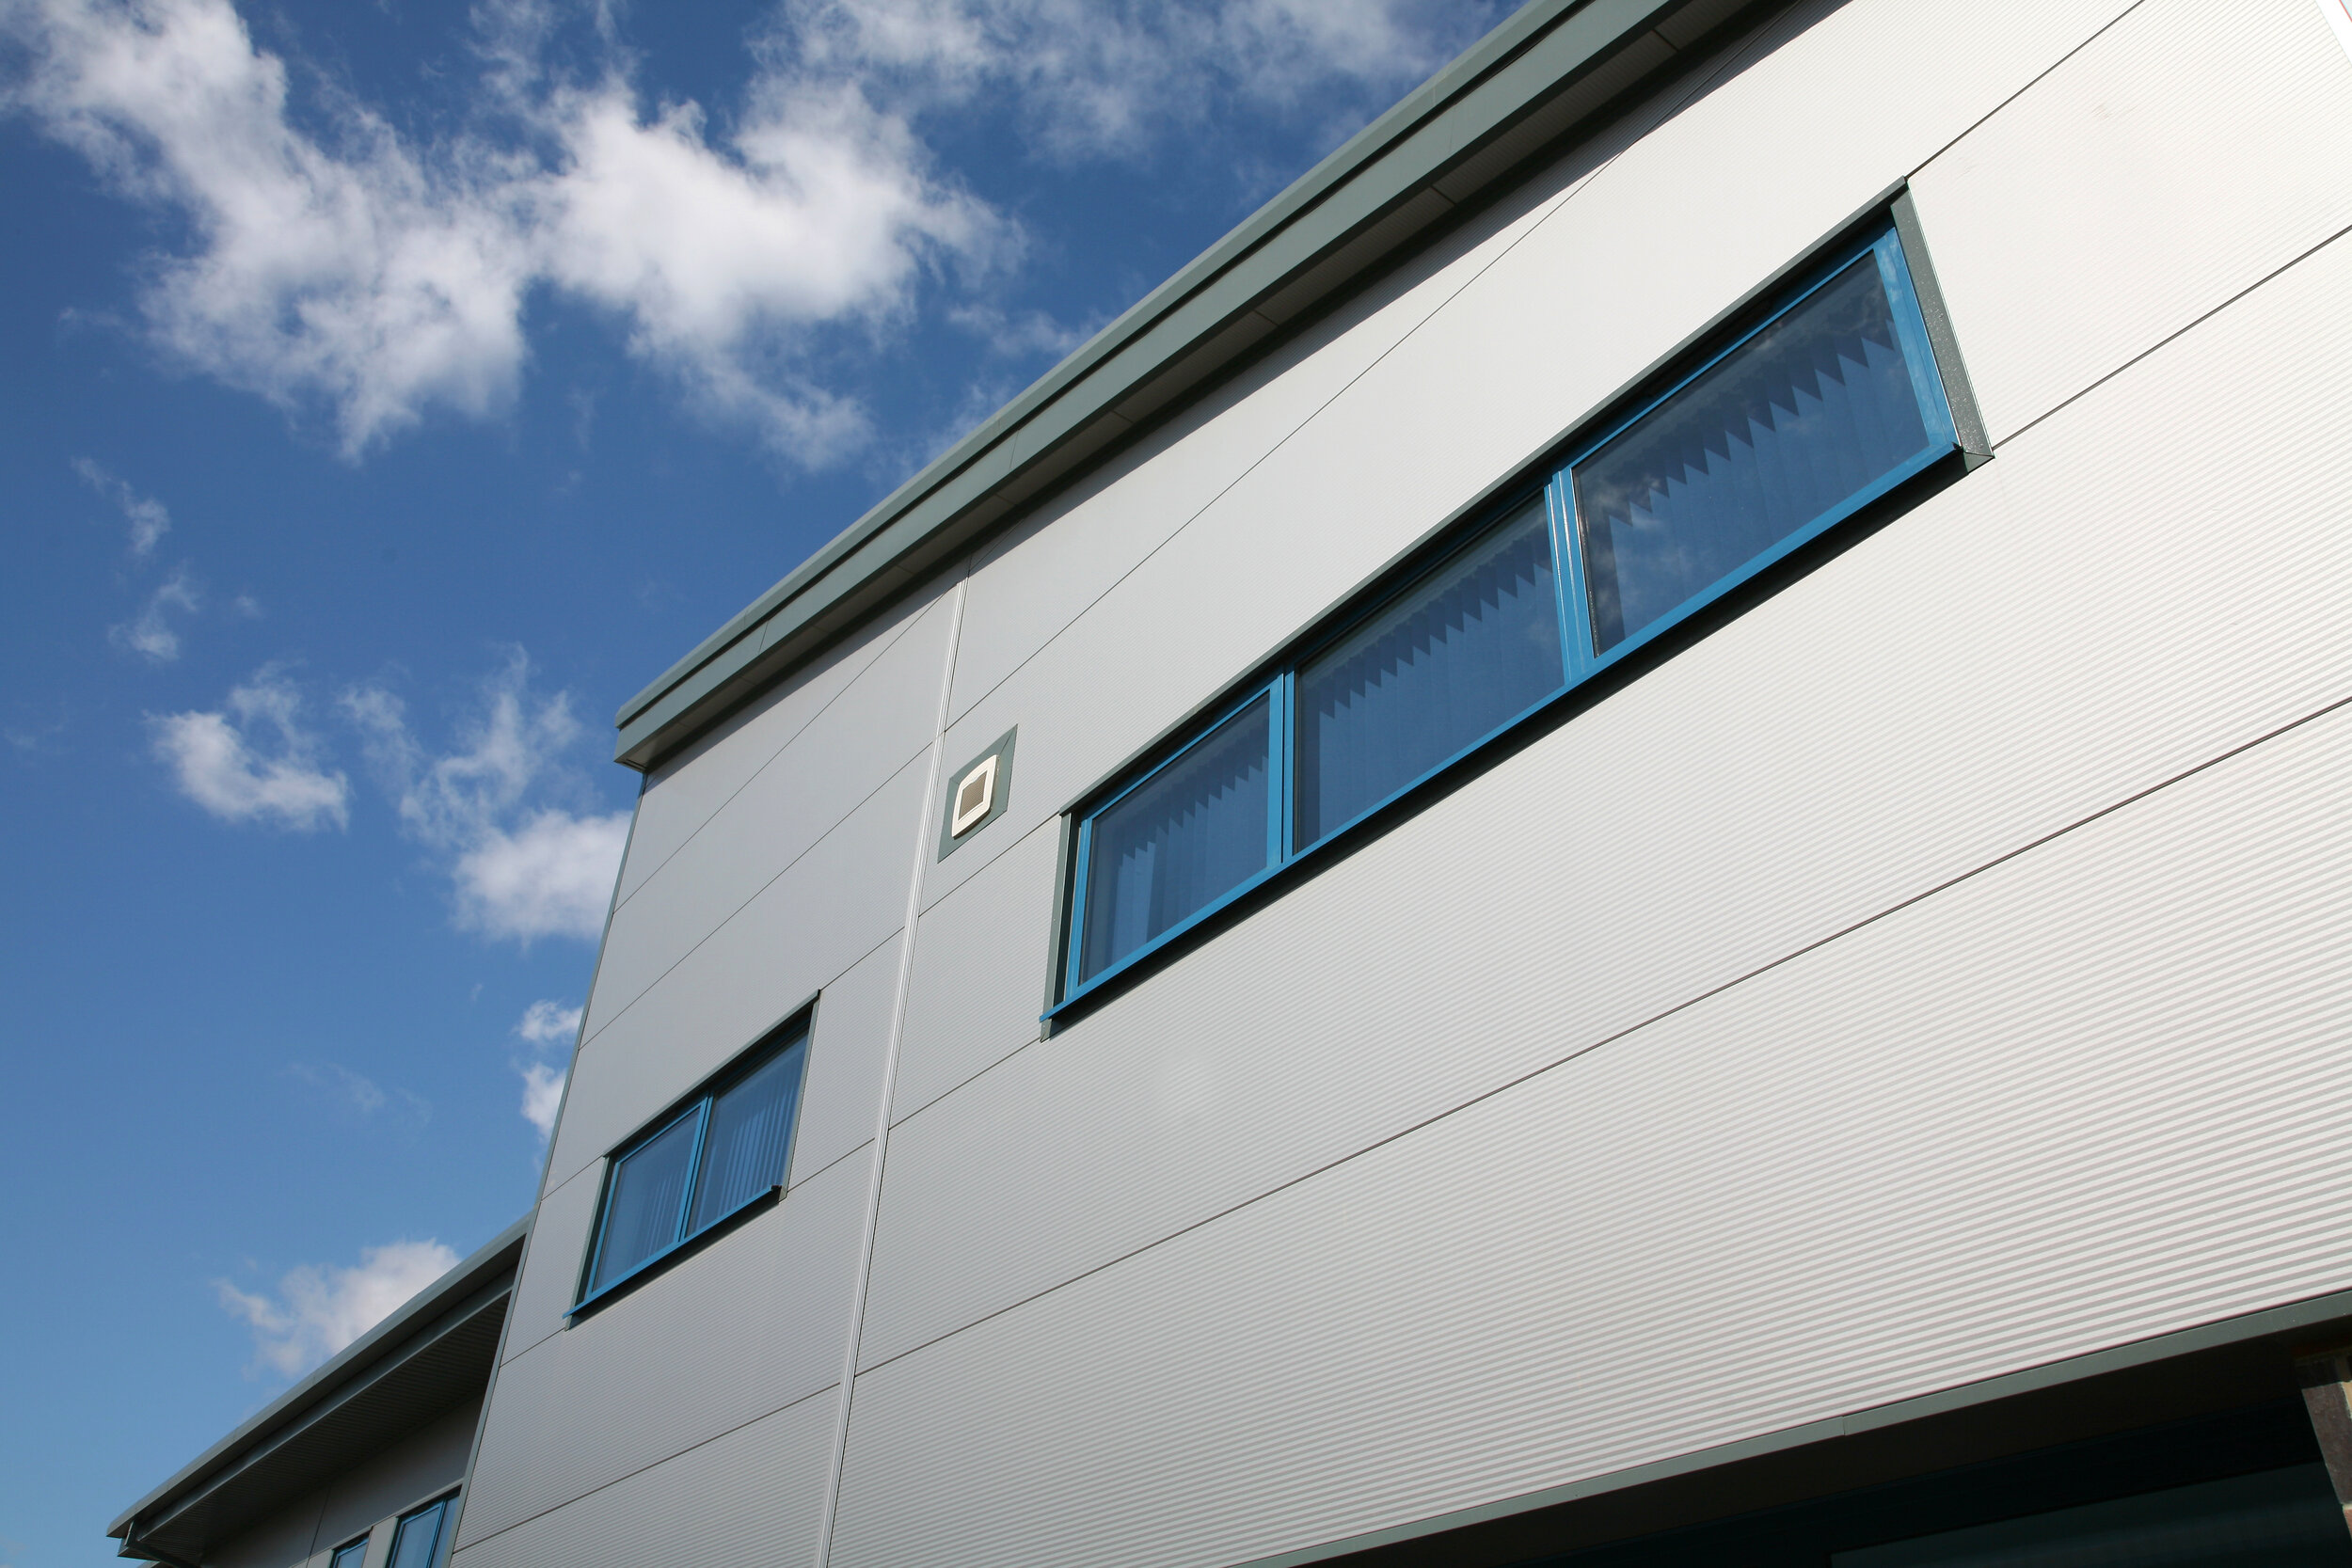 University Academy Holbeach - Location: Holbeach, LincolnshireValue: £55,000.00Sector: EducationProducts: Aluminium casement windows and commercial entrance doors